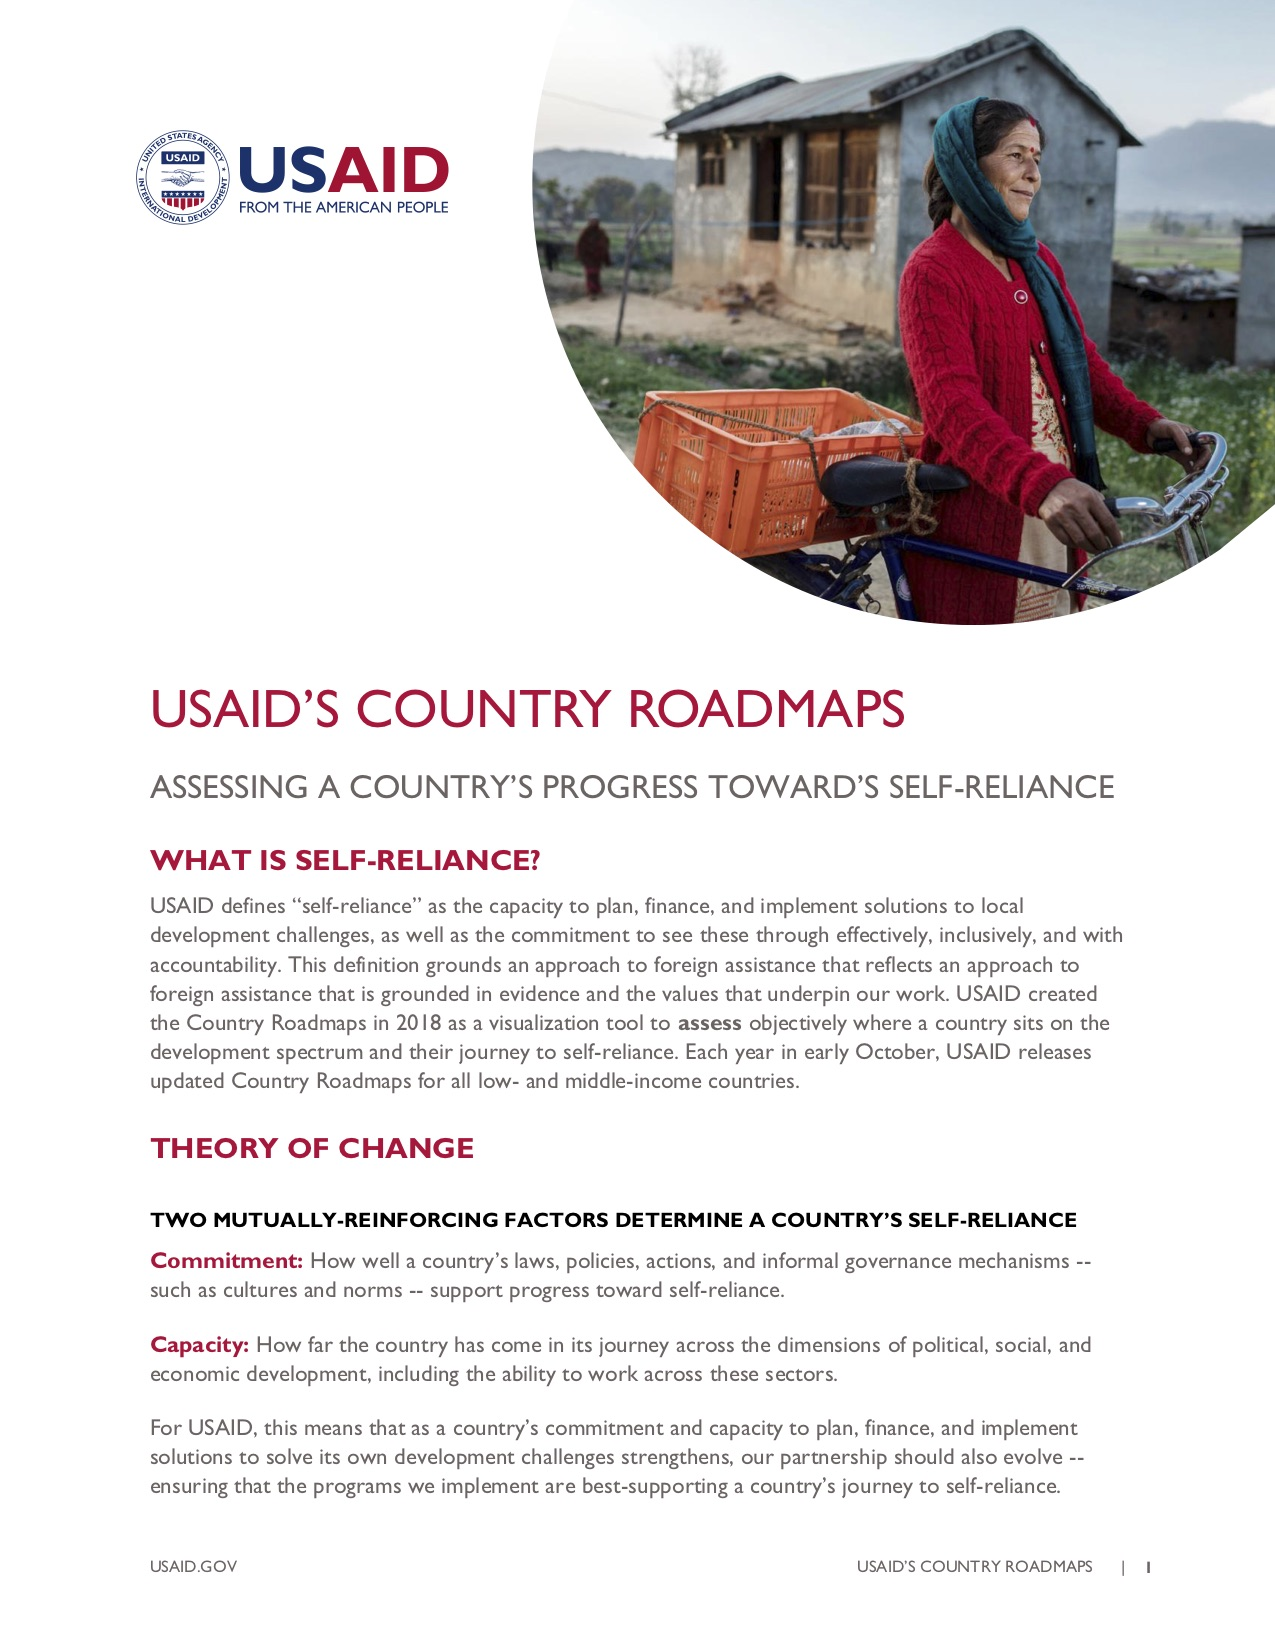 USAID's Country Roadmaps Fact Sheet